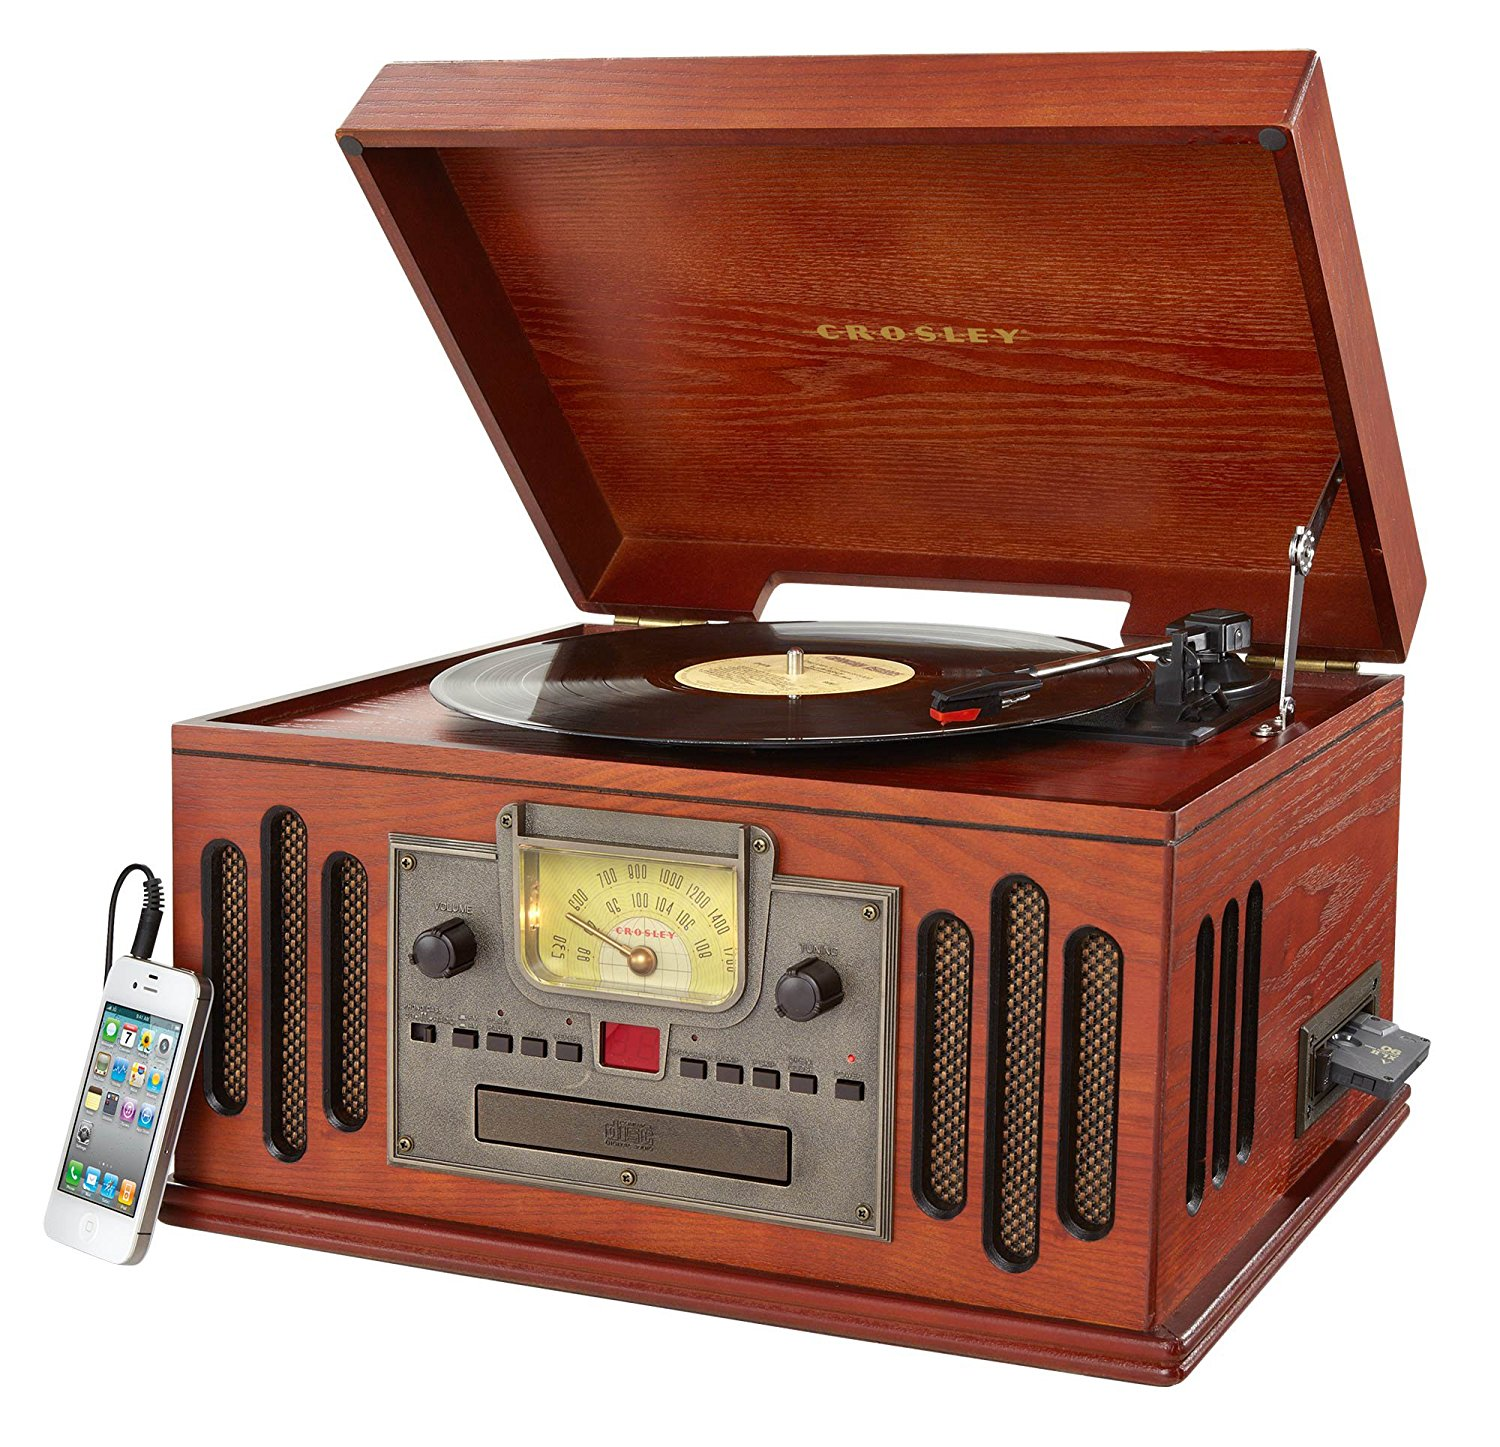 Record Player clipart tape player Amazon CR704C Paprika: PA &